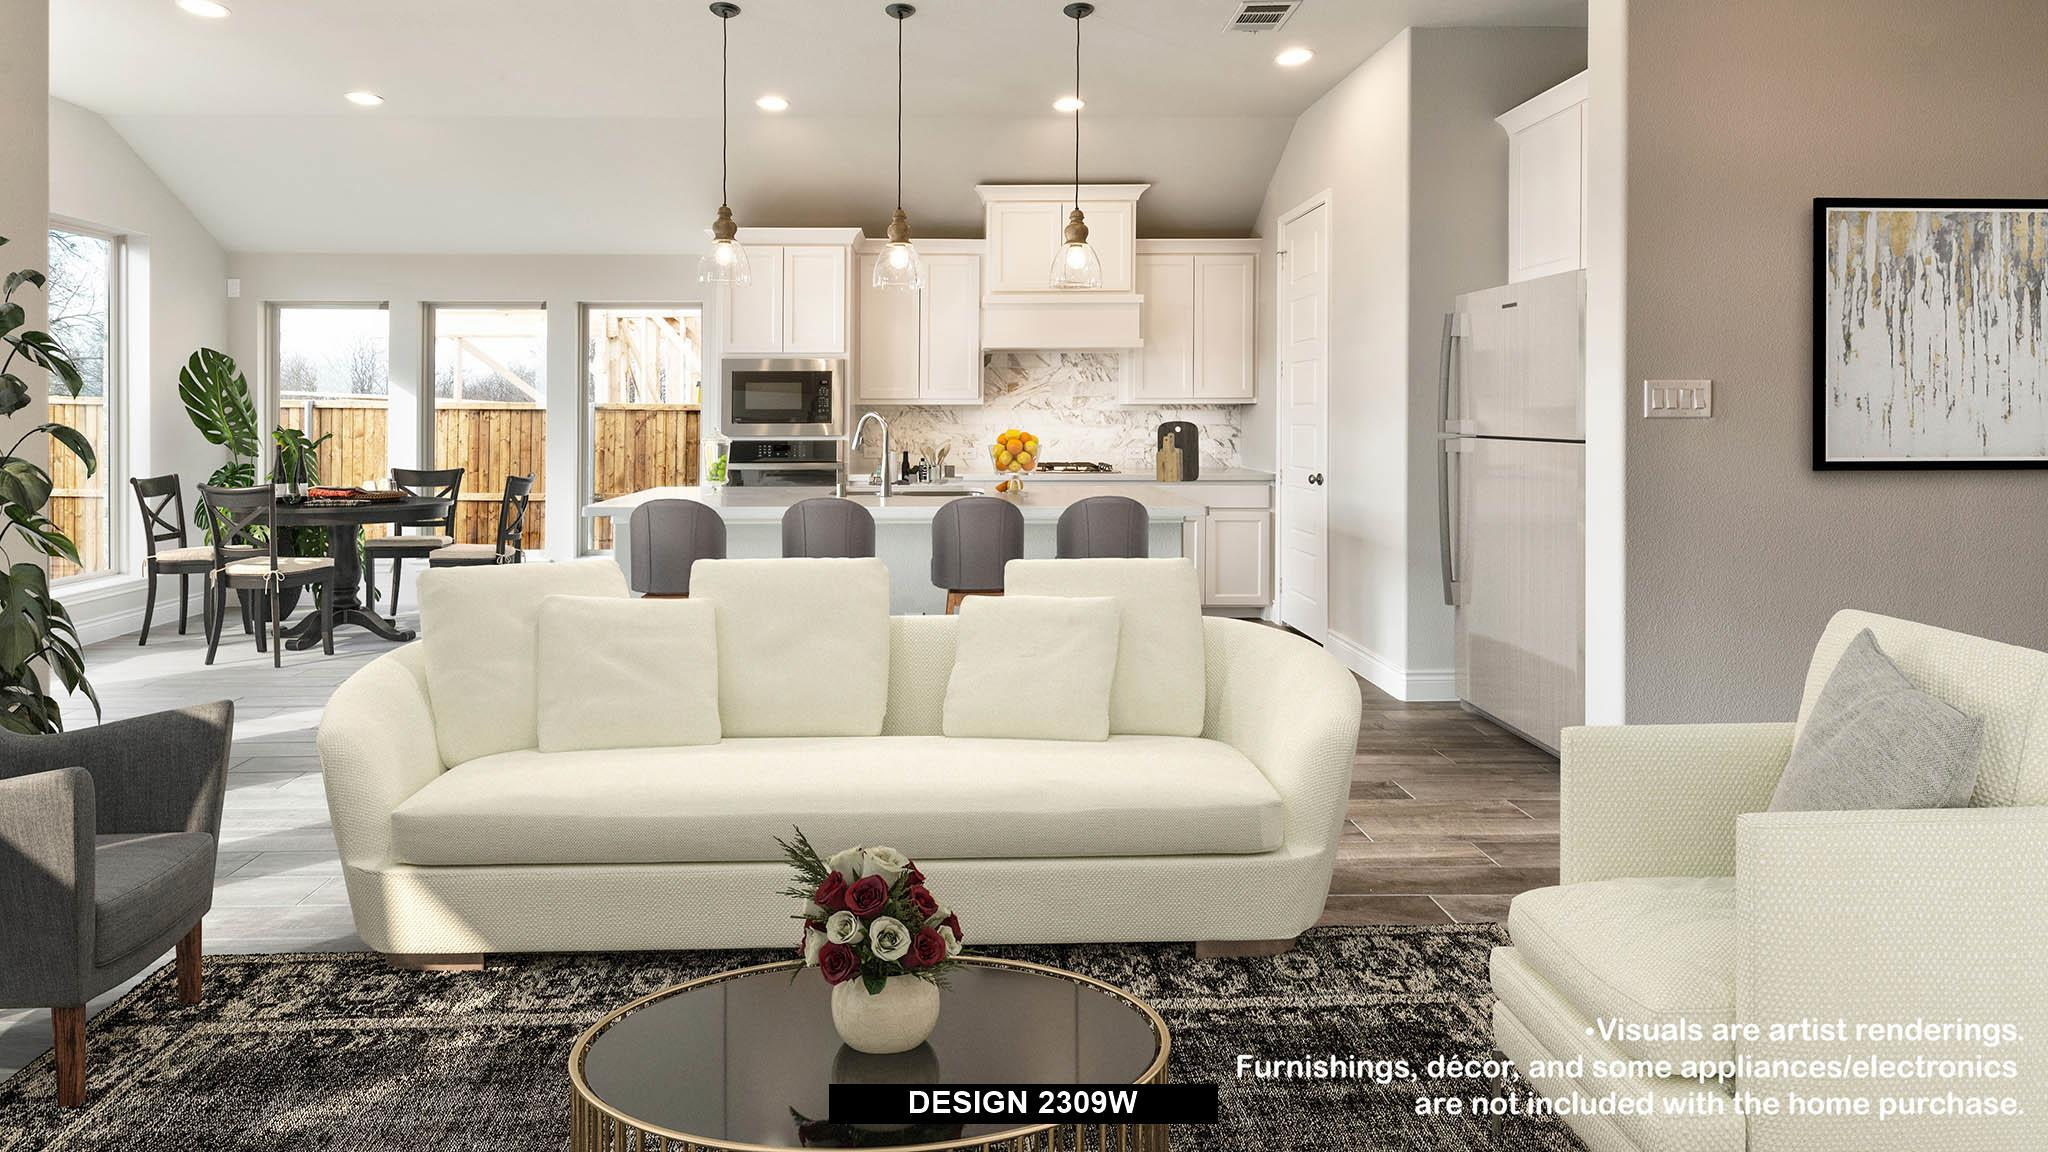 Living Area featured in the 2309W By Perry Homes in Dallas, TX